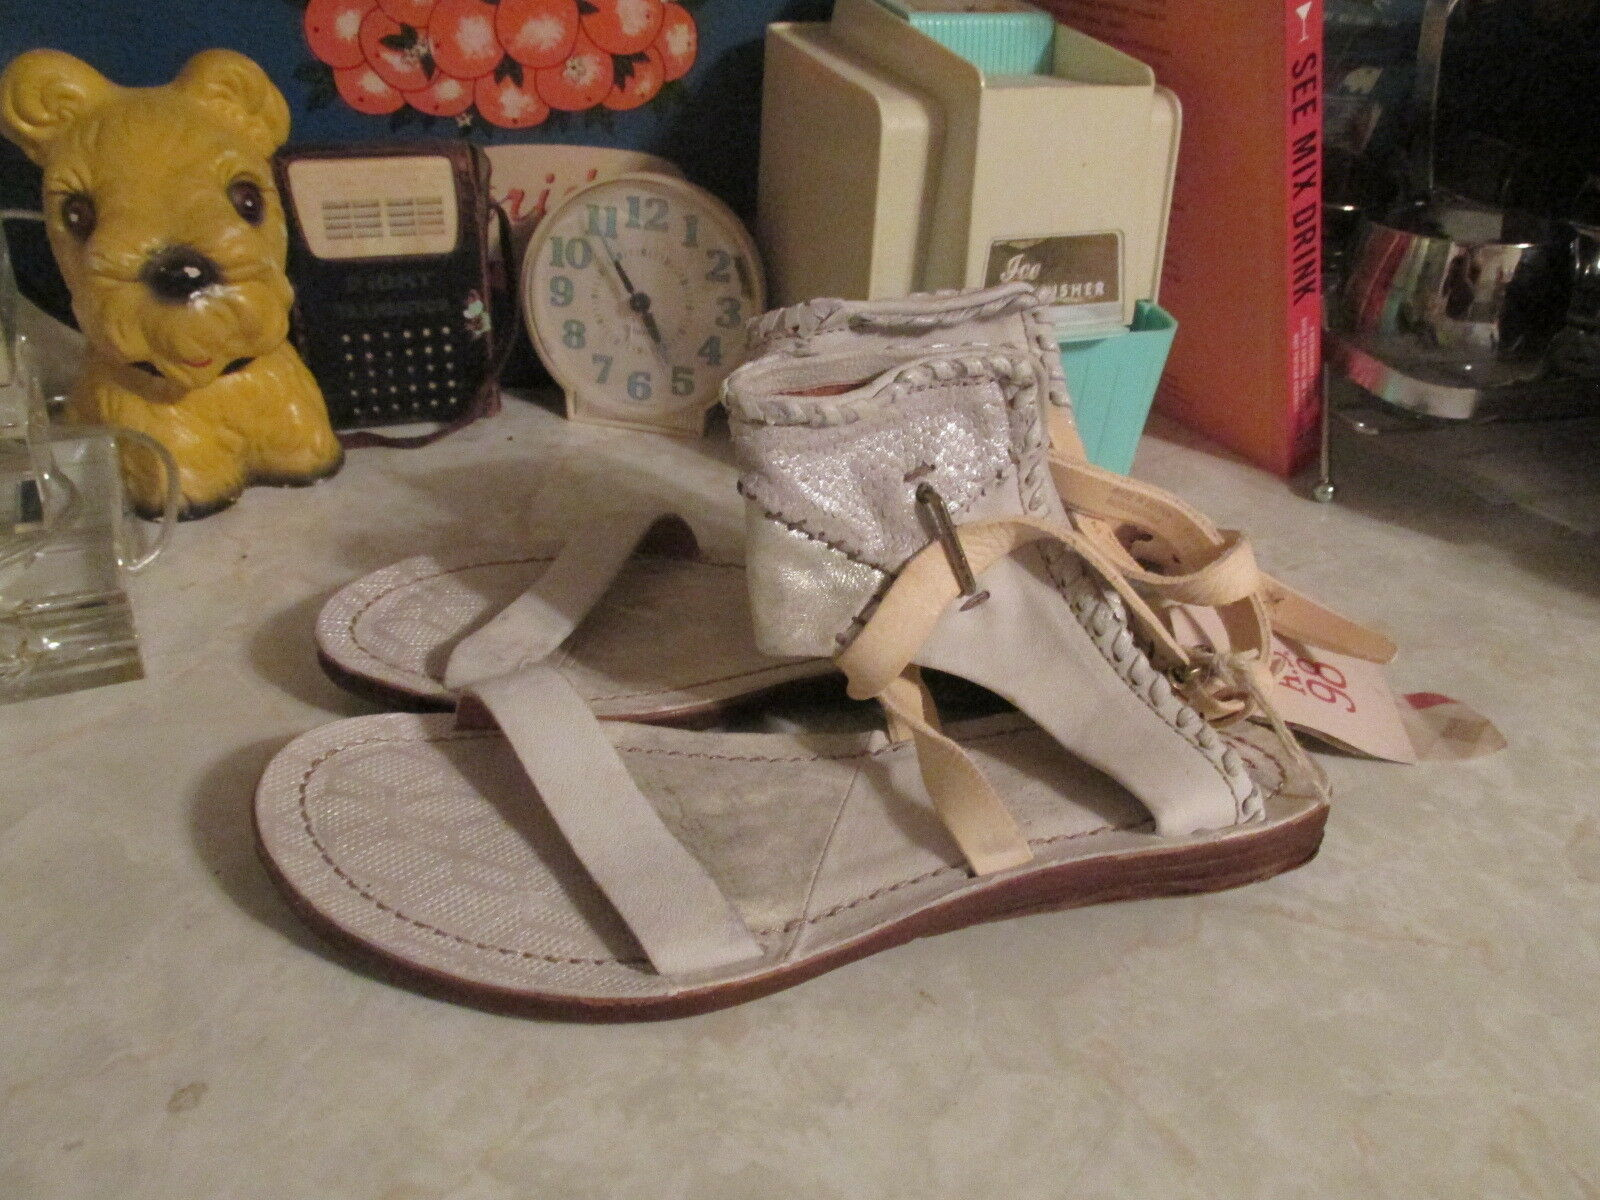 AS 98 Free Free Free People  Stateside  Patchwork Leather Sandals Sz EU 40 NWOB 2a4ddd